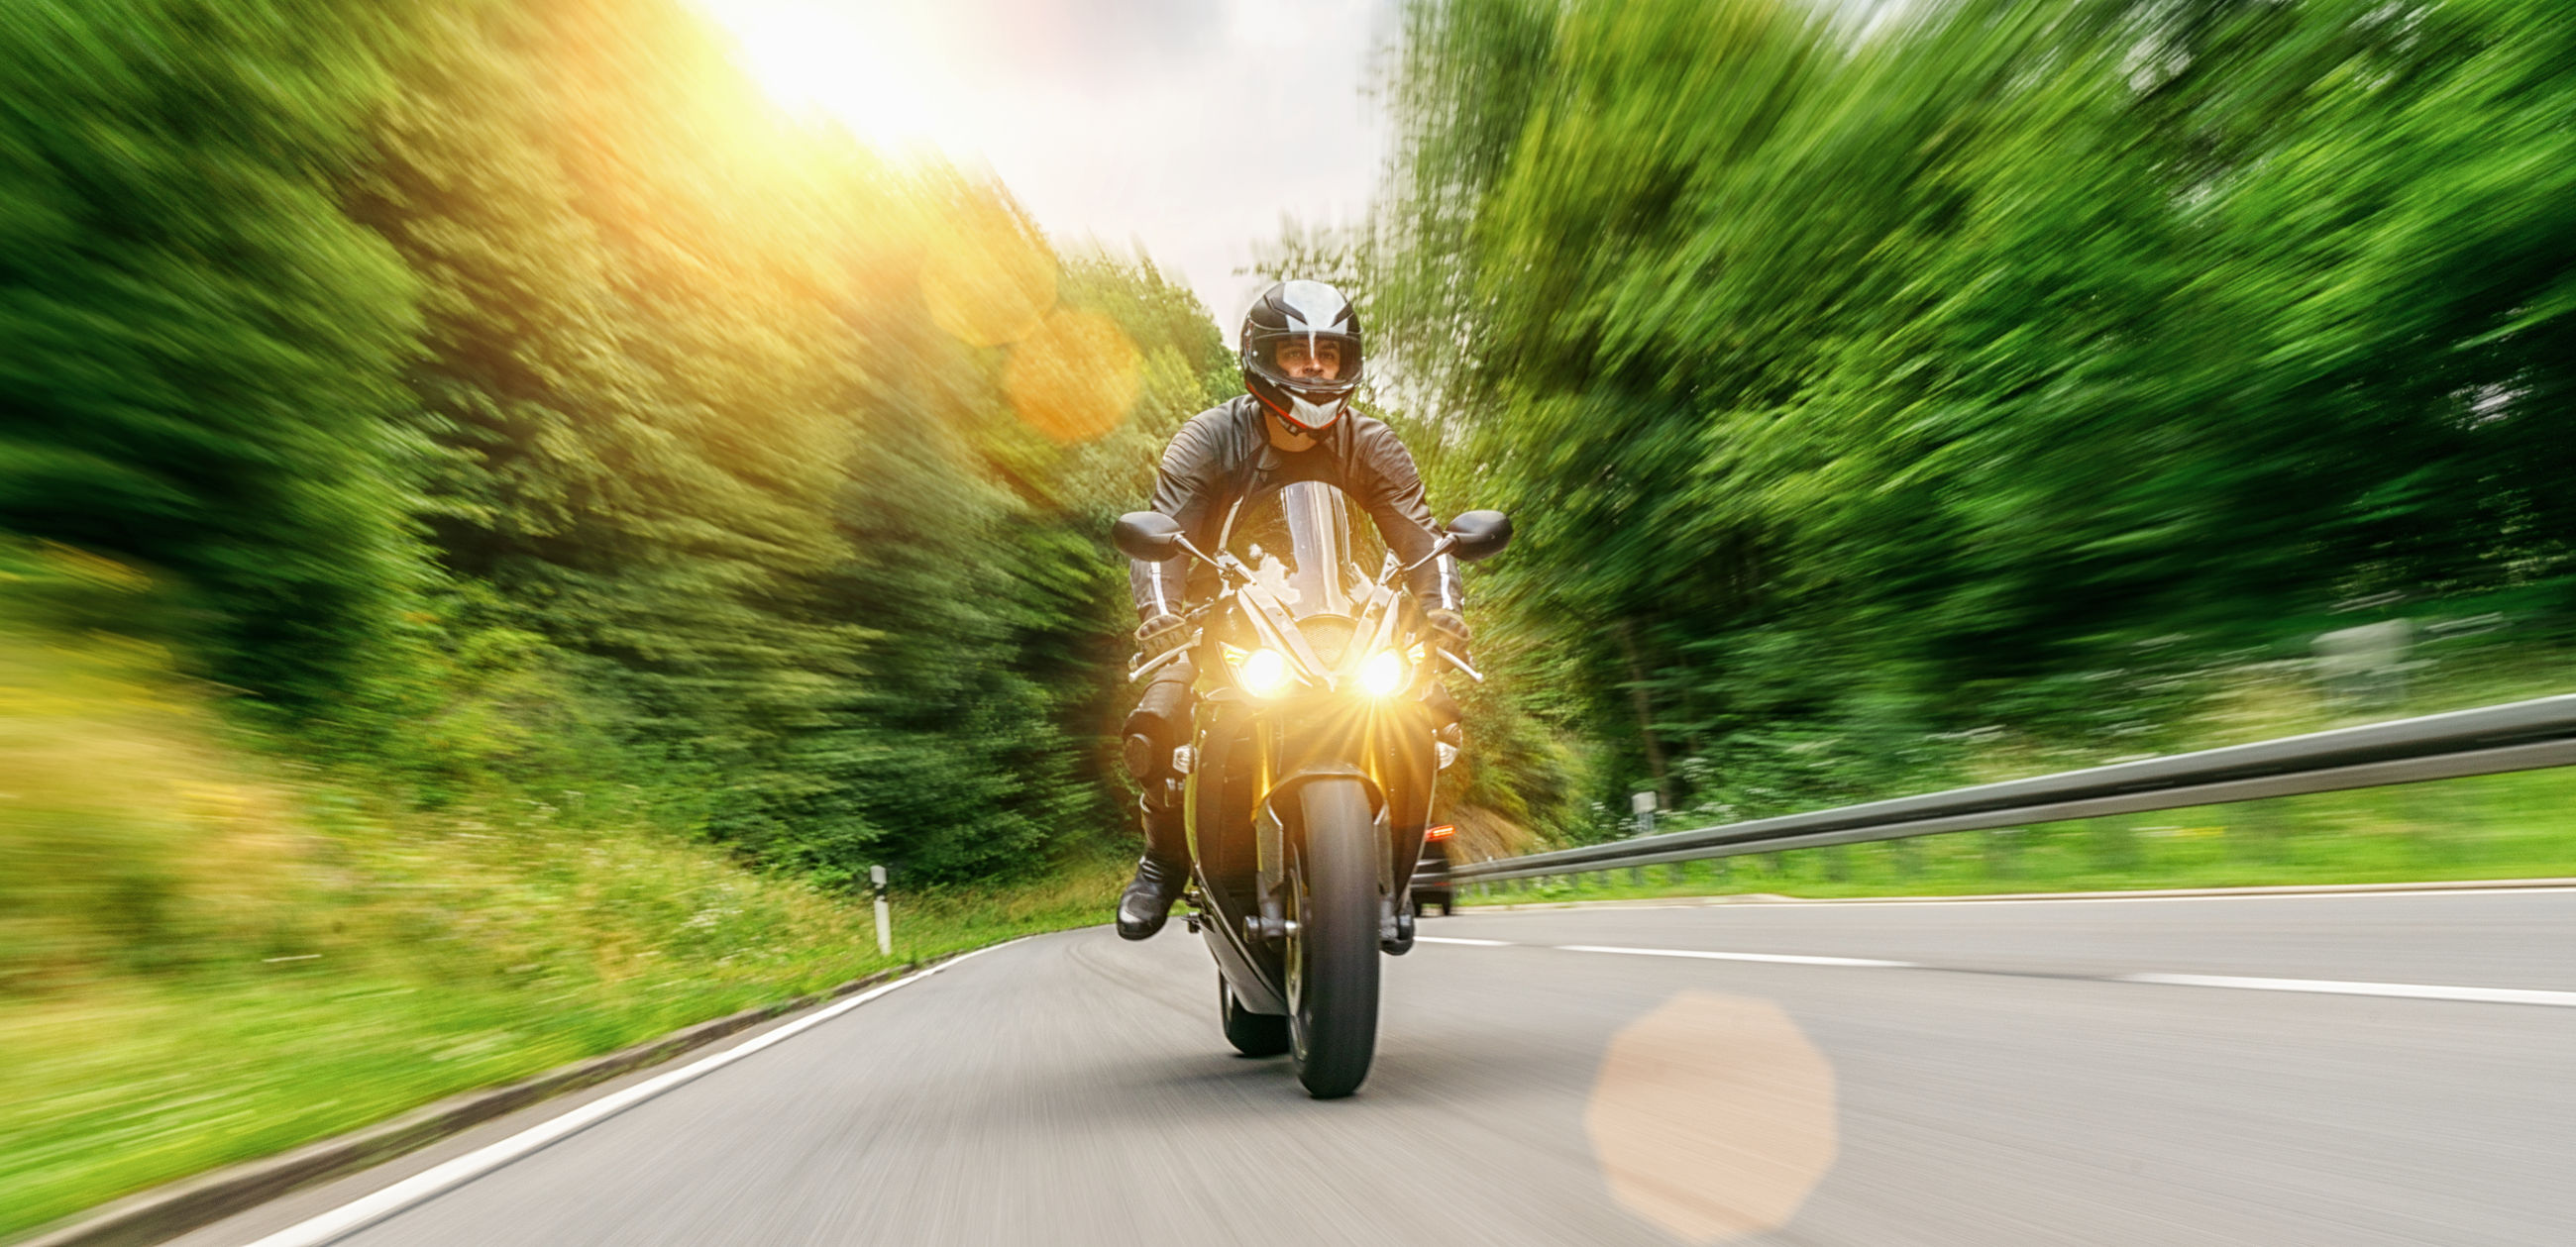 Man riding motorcycle on road against trees in forest